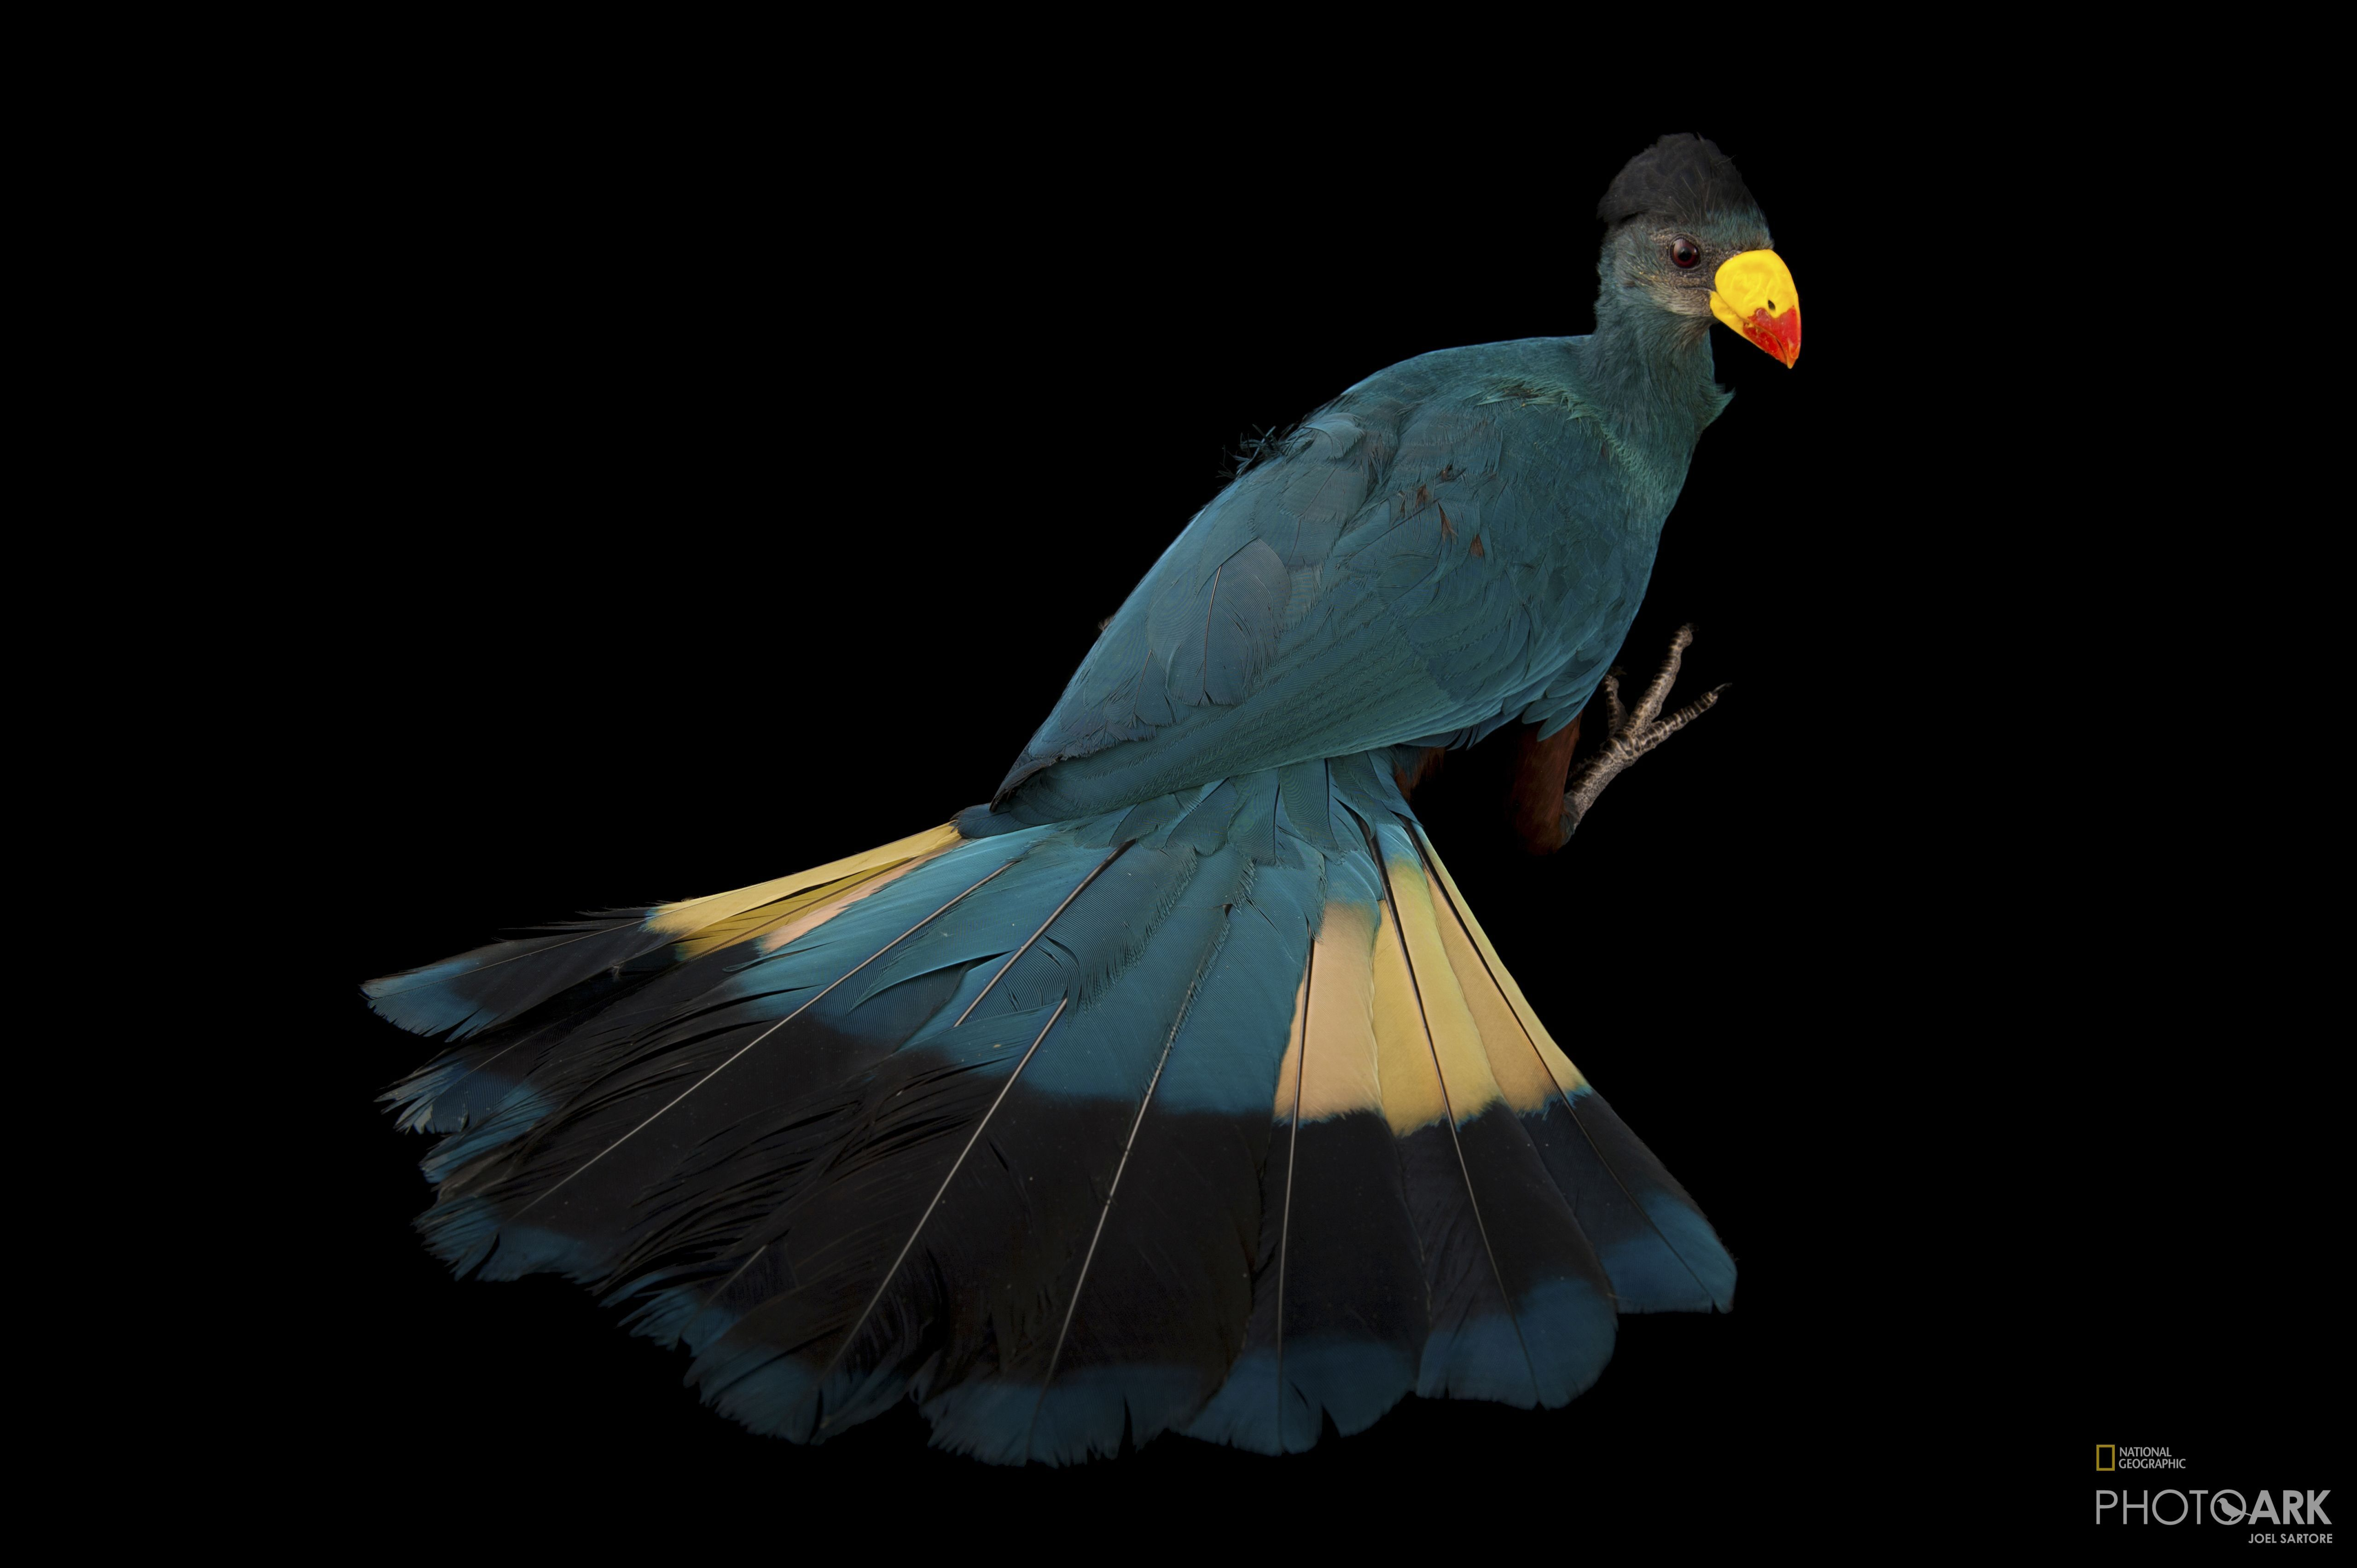 Photo Ark Home Great Blue Turaco National Geographic